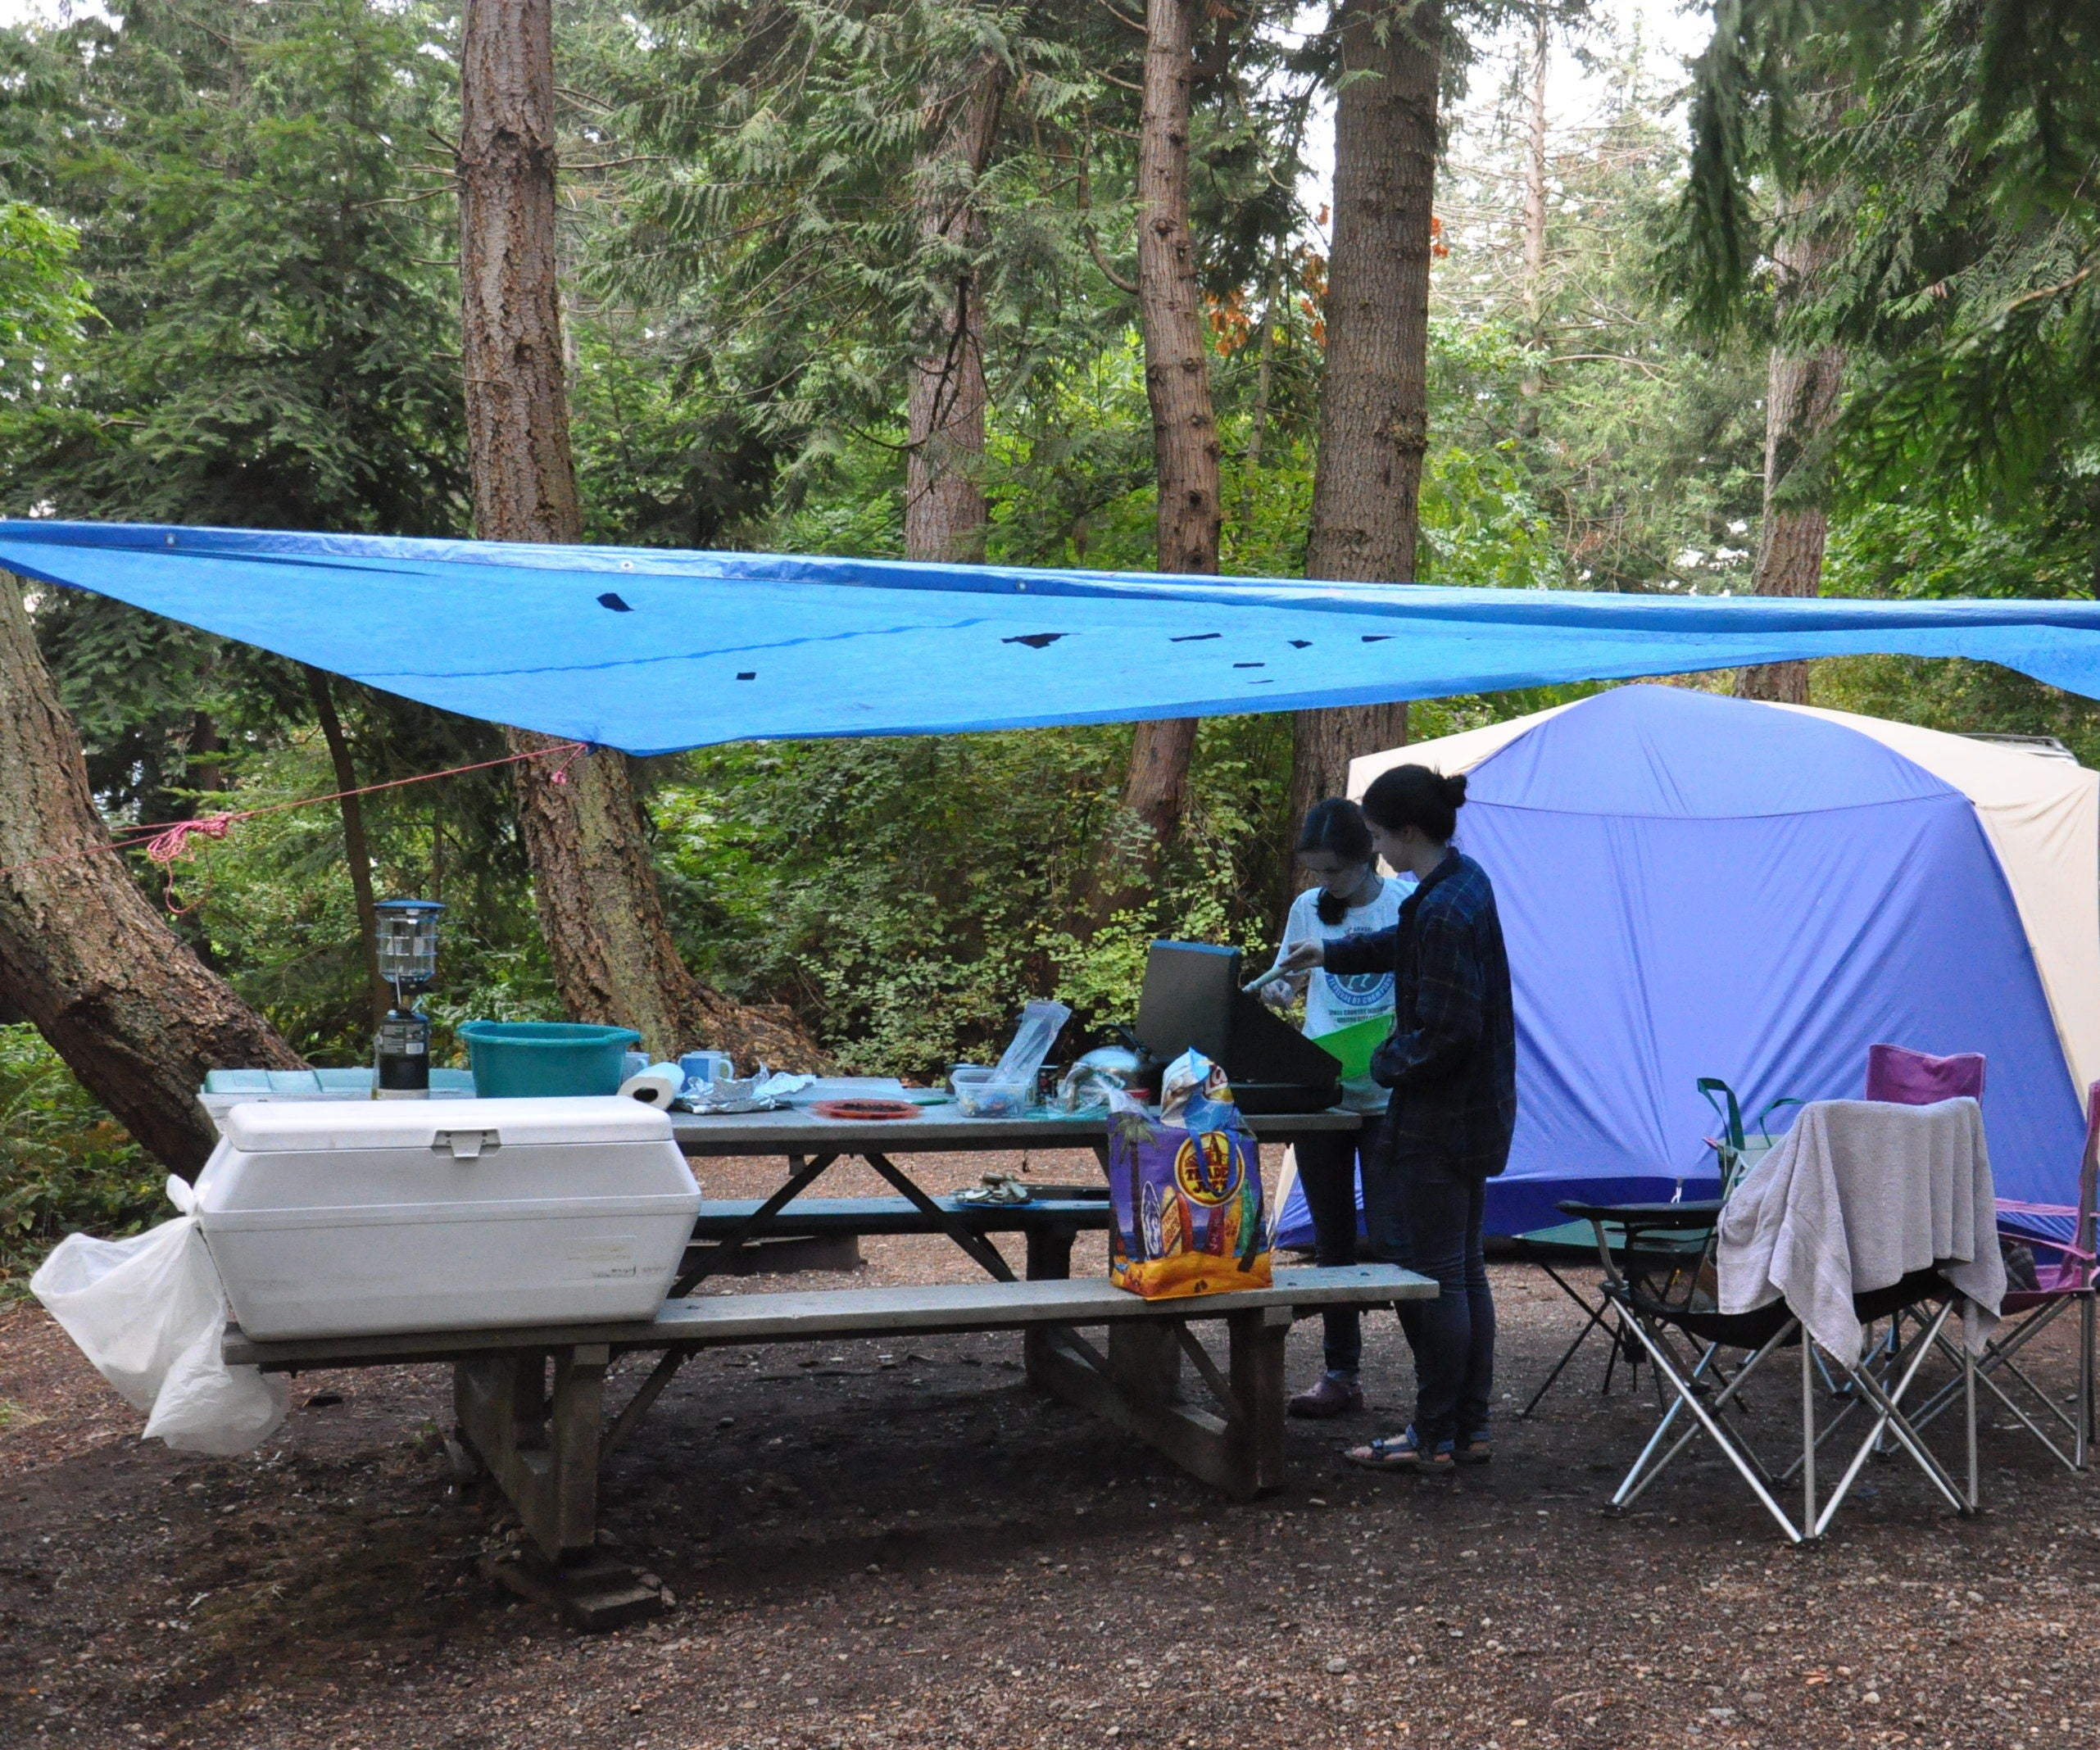 How To Car Camp In The Rain 11 Lifehacks 11 Steps With Pictures Instructables